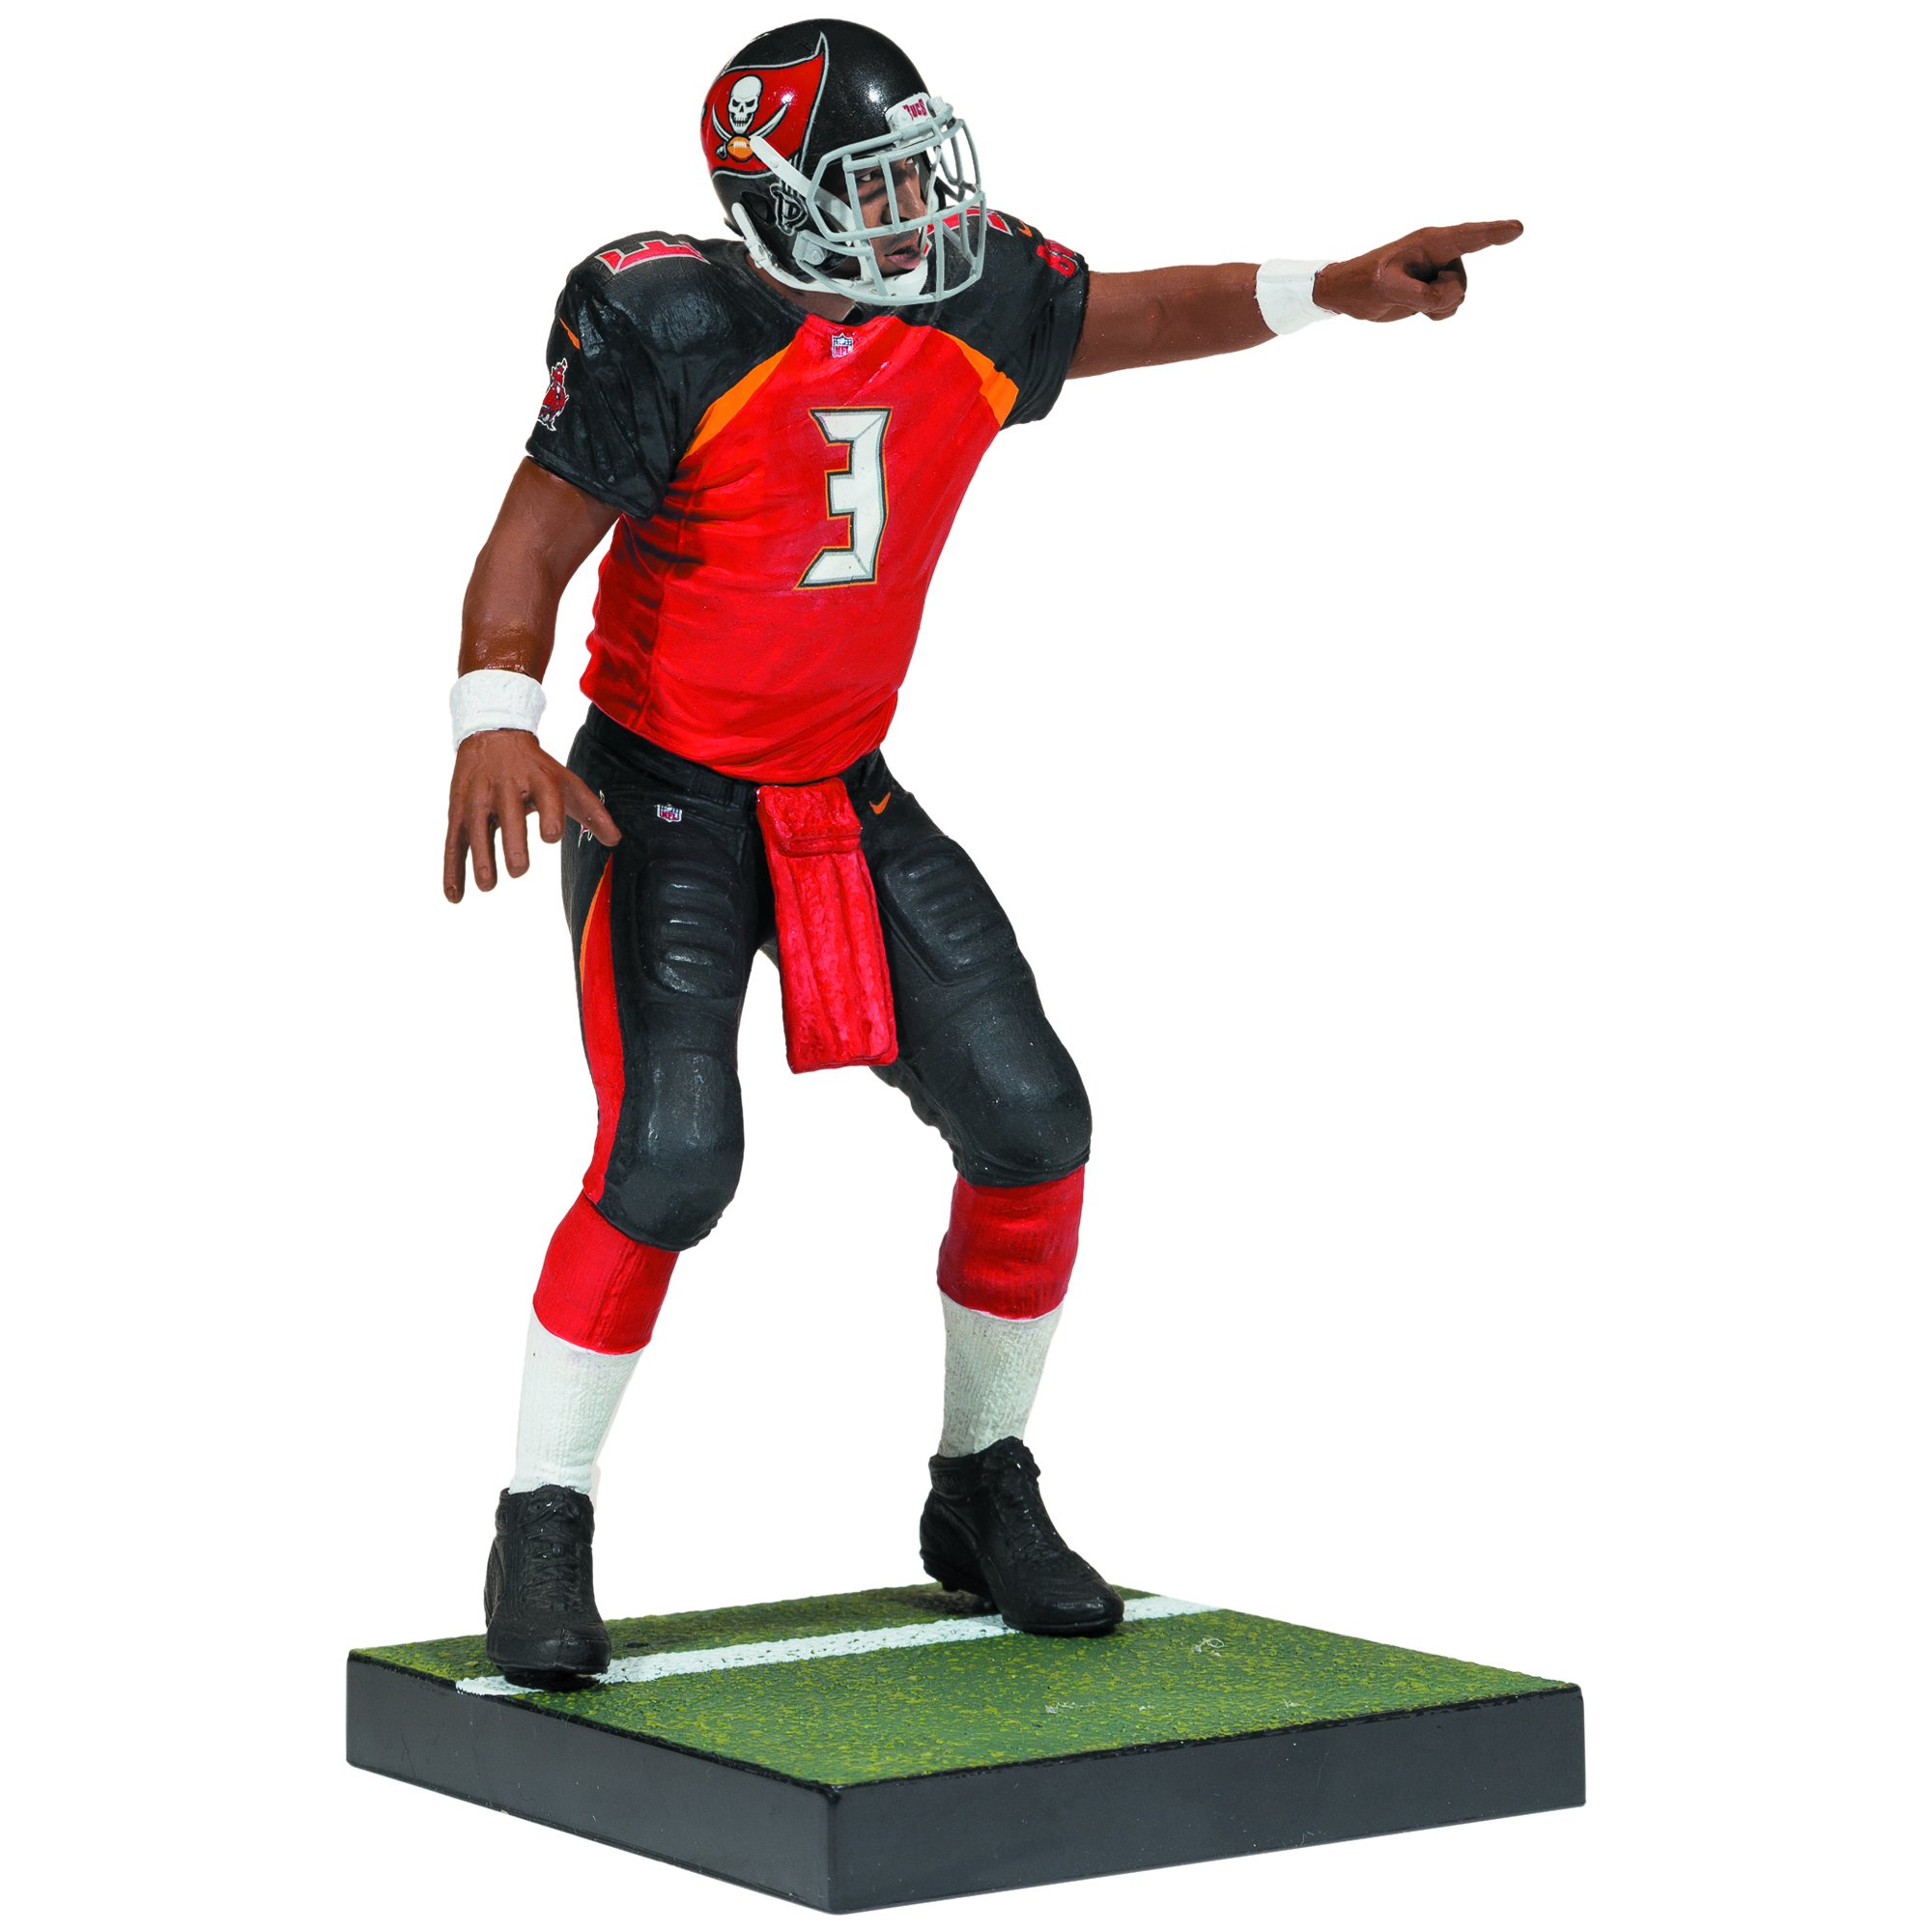 McFarlane NFL Action Figures: Amazon.com